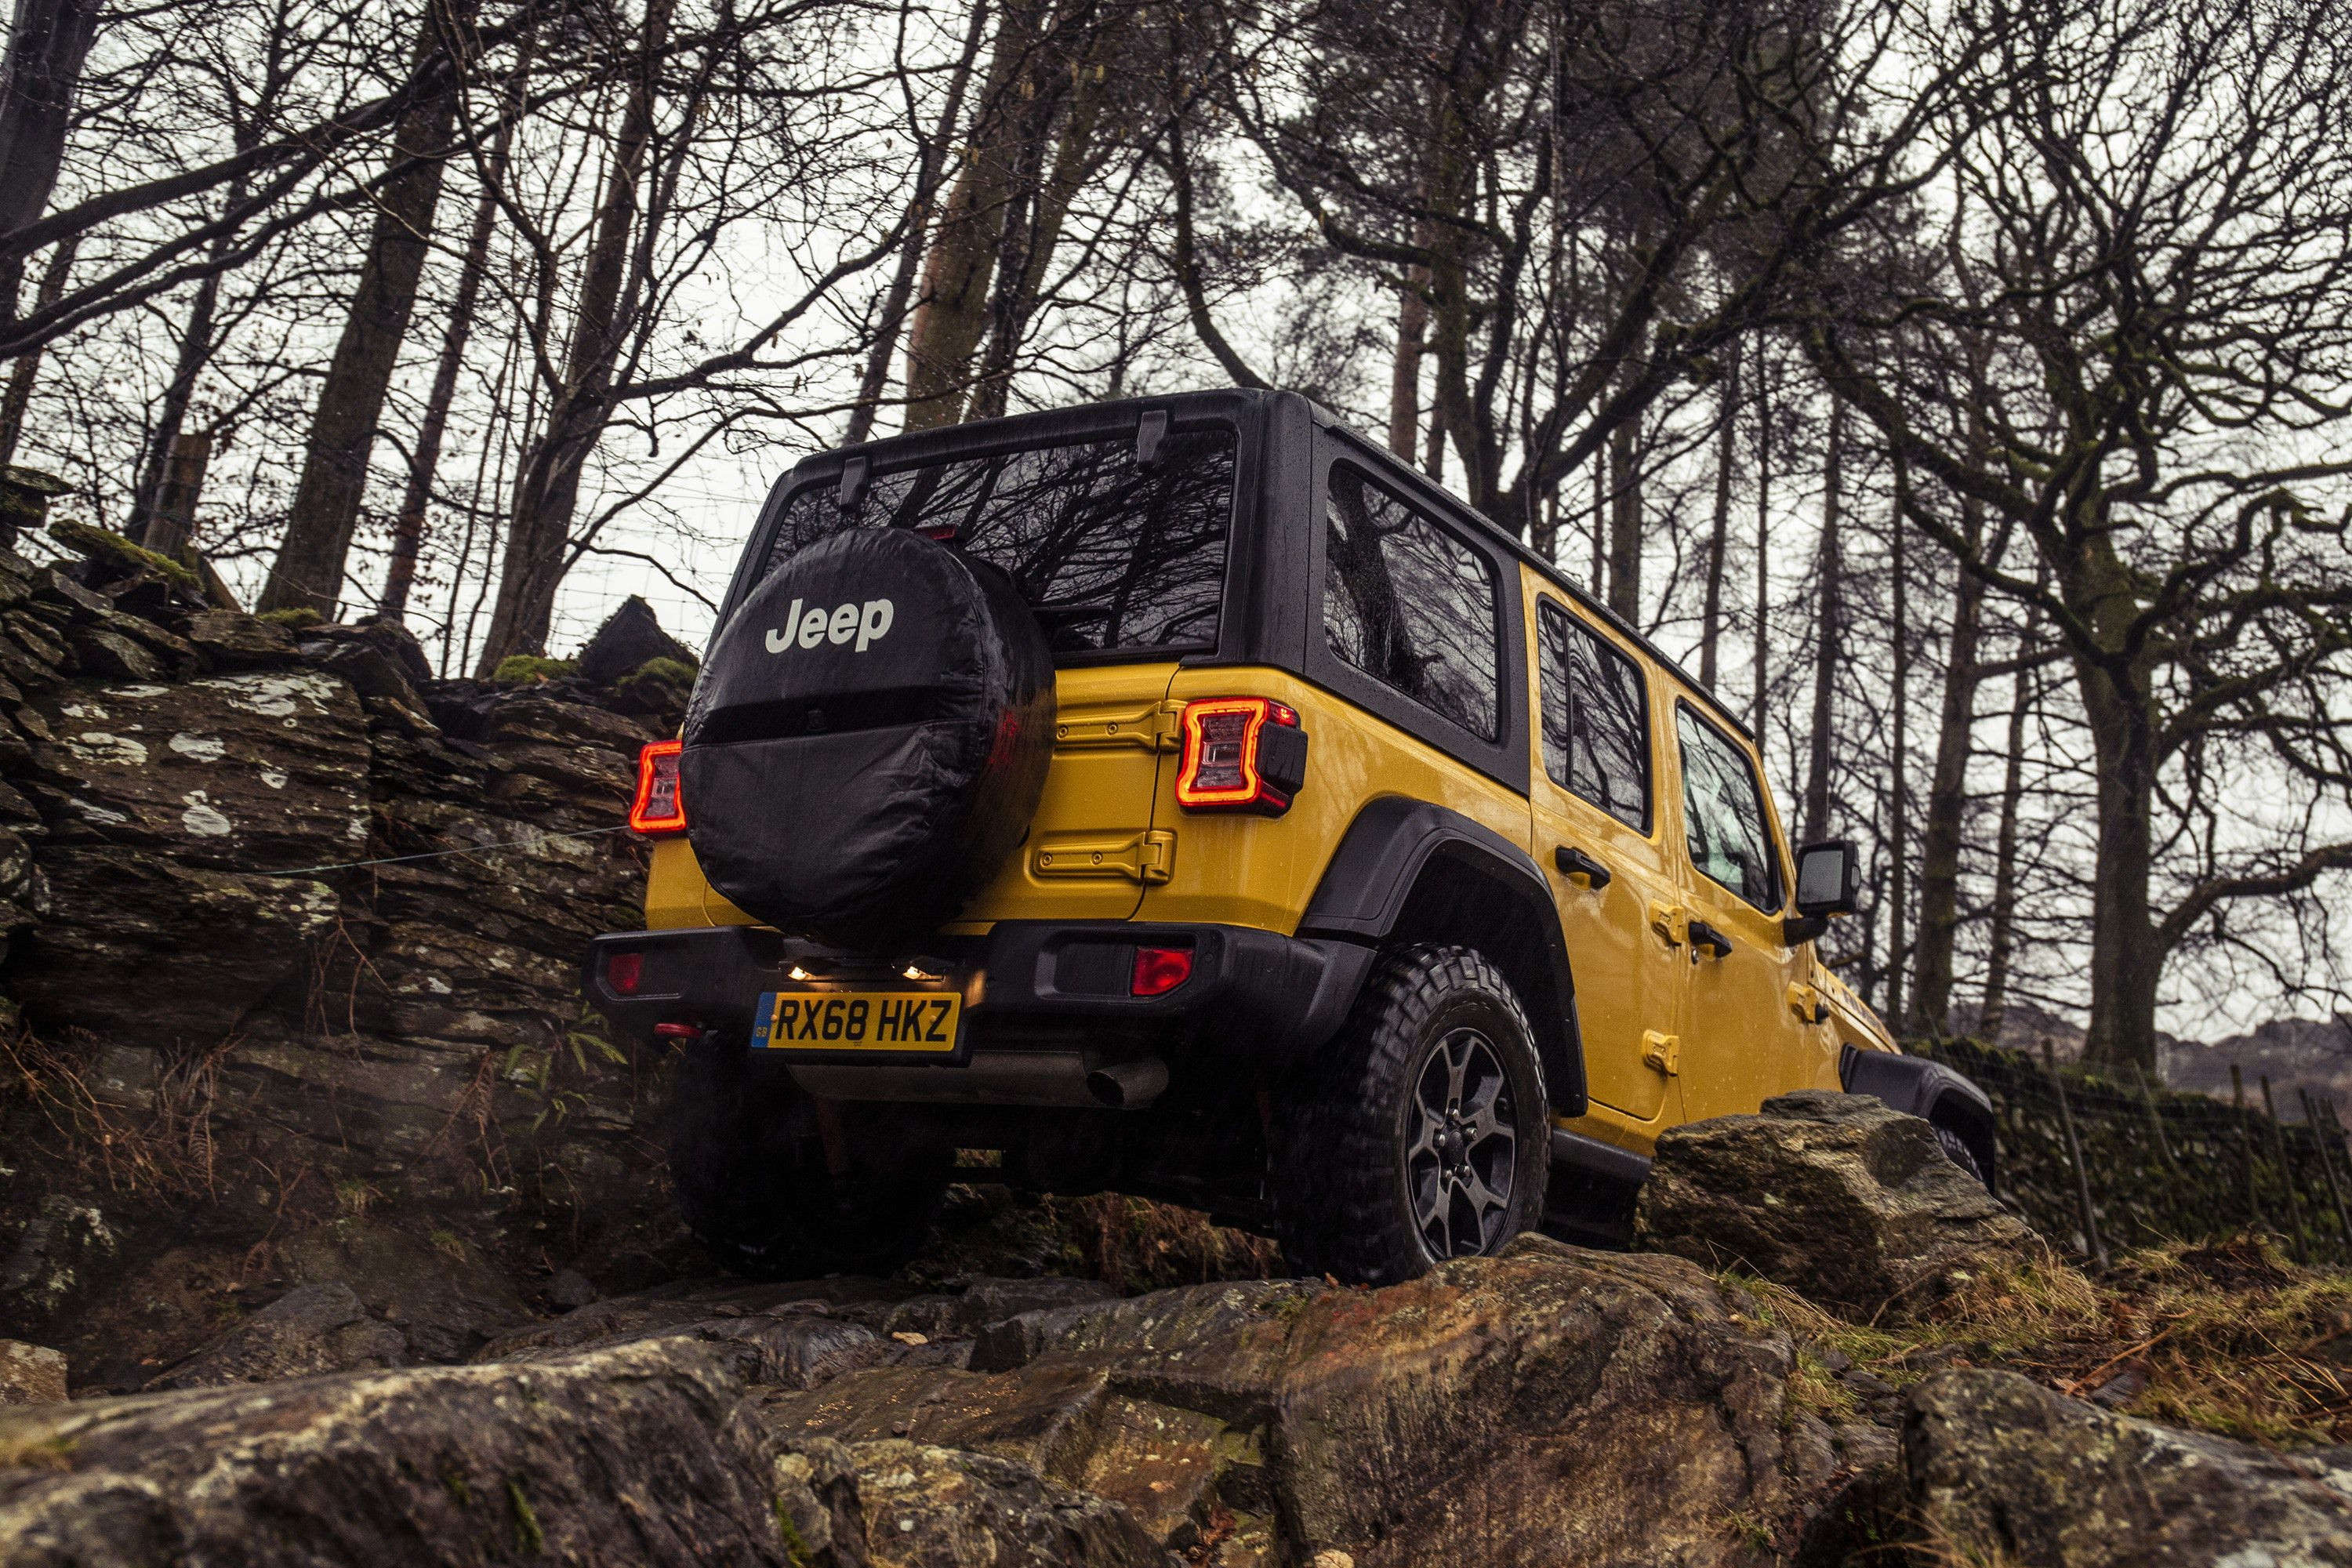 Jeep Wrangler driving on rocky roads